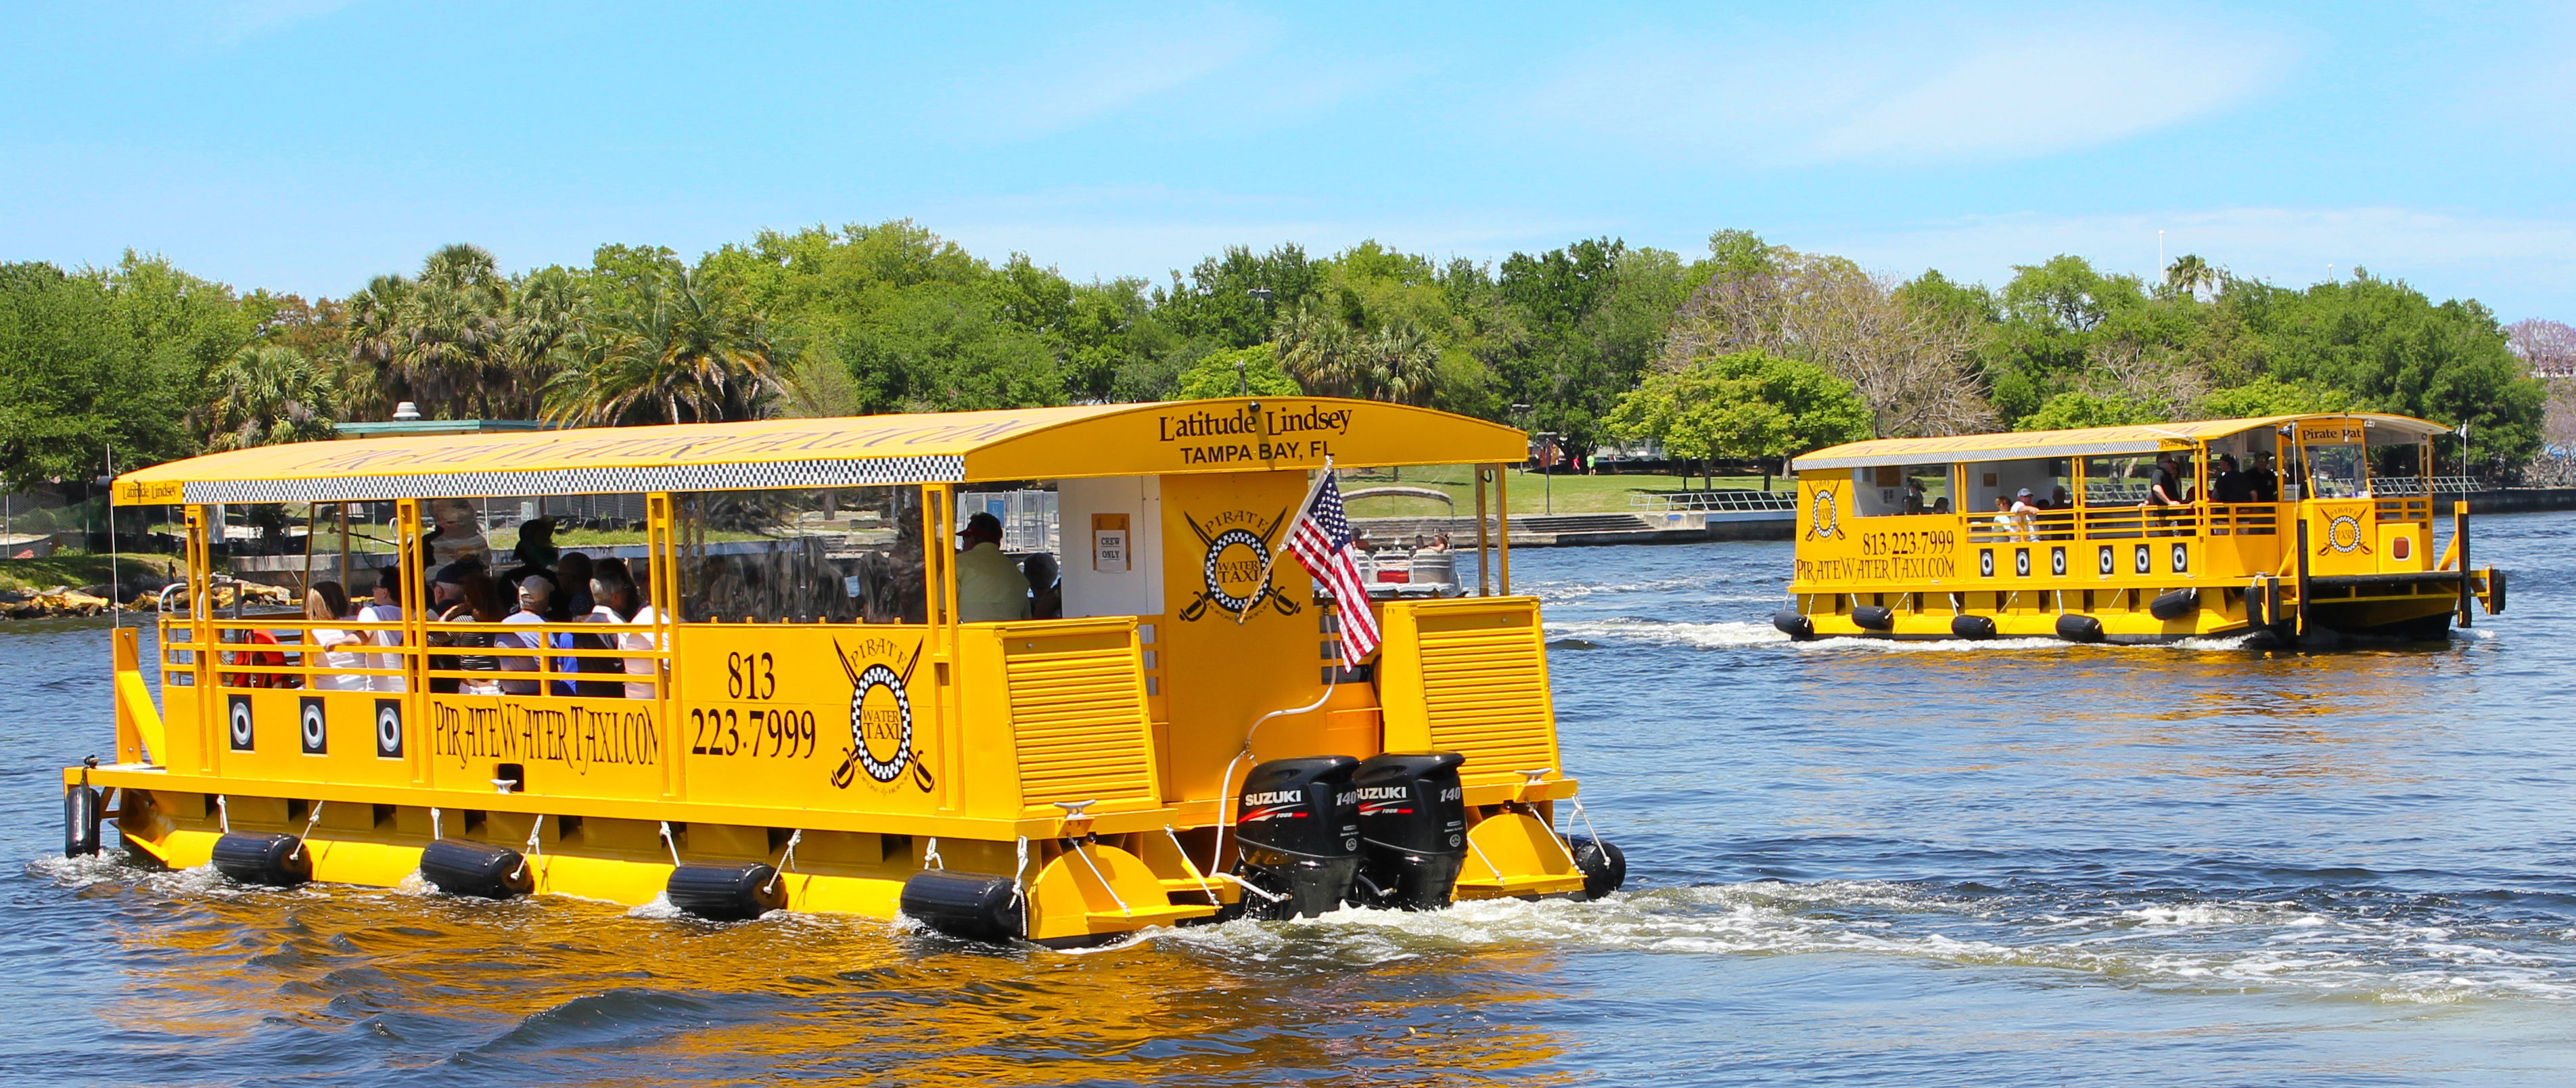 Pirate Water Taxis passing each other